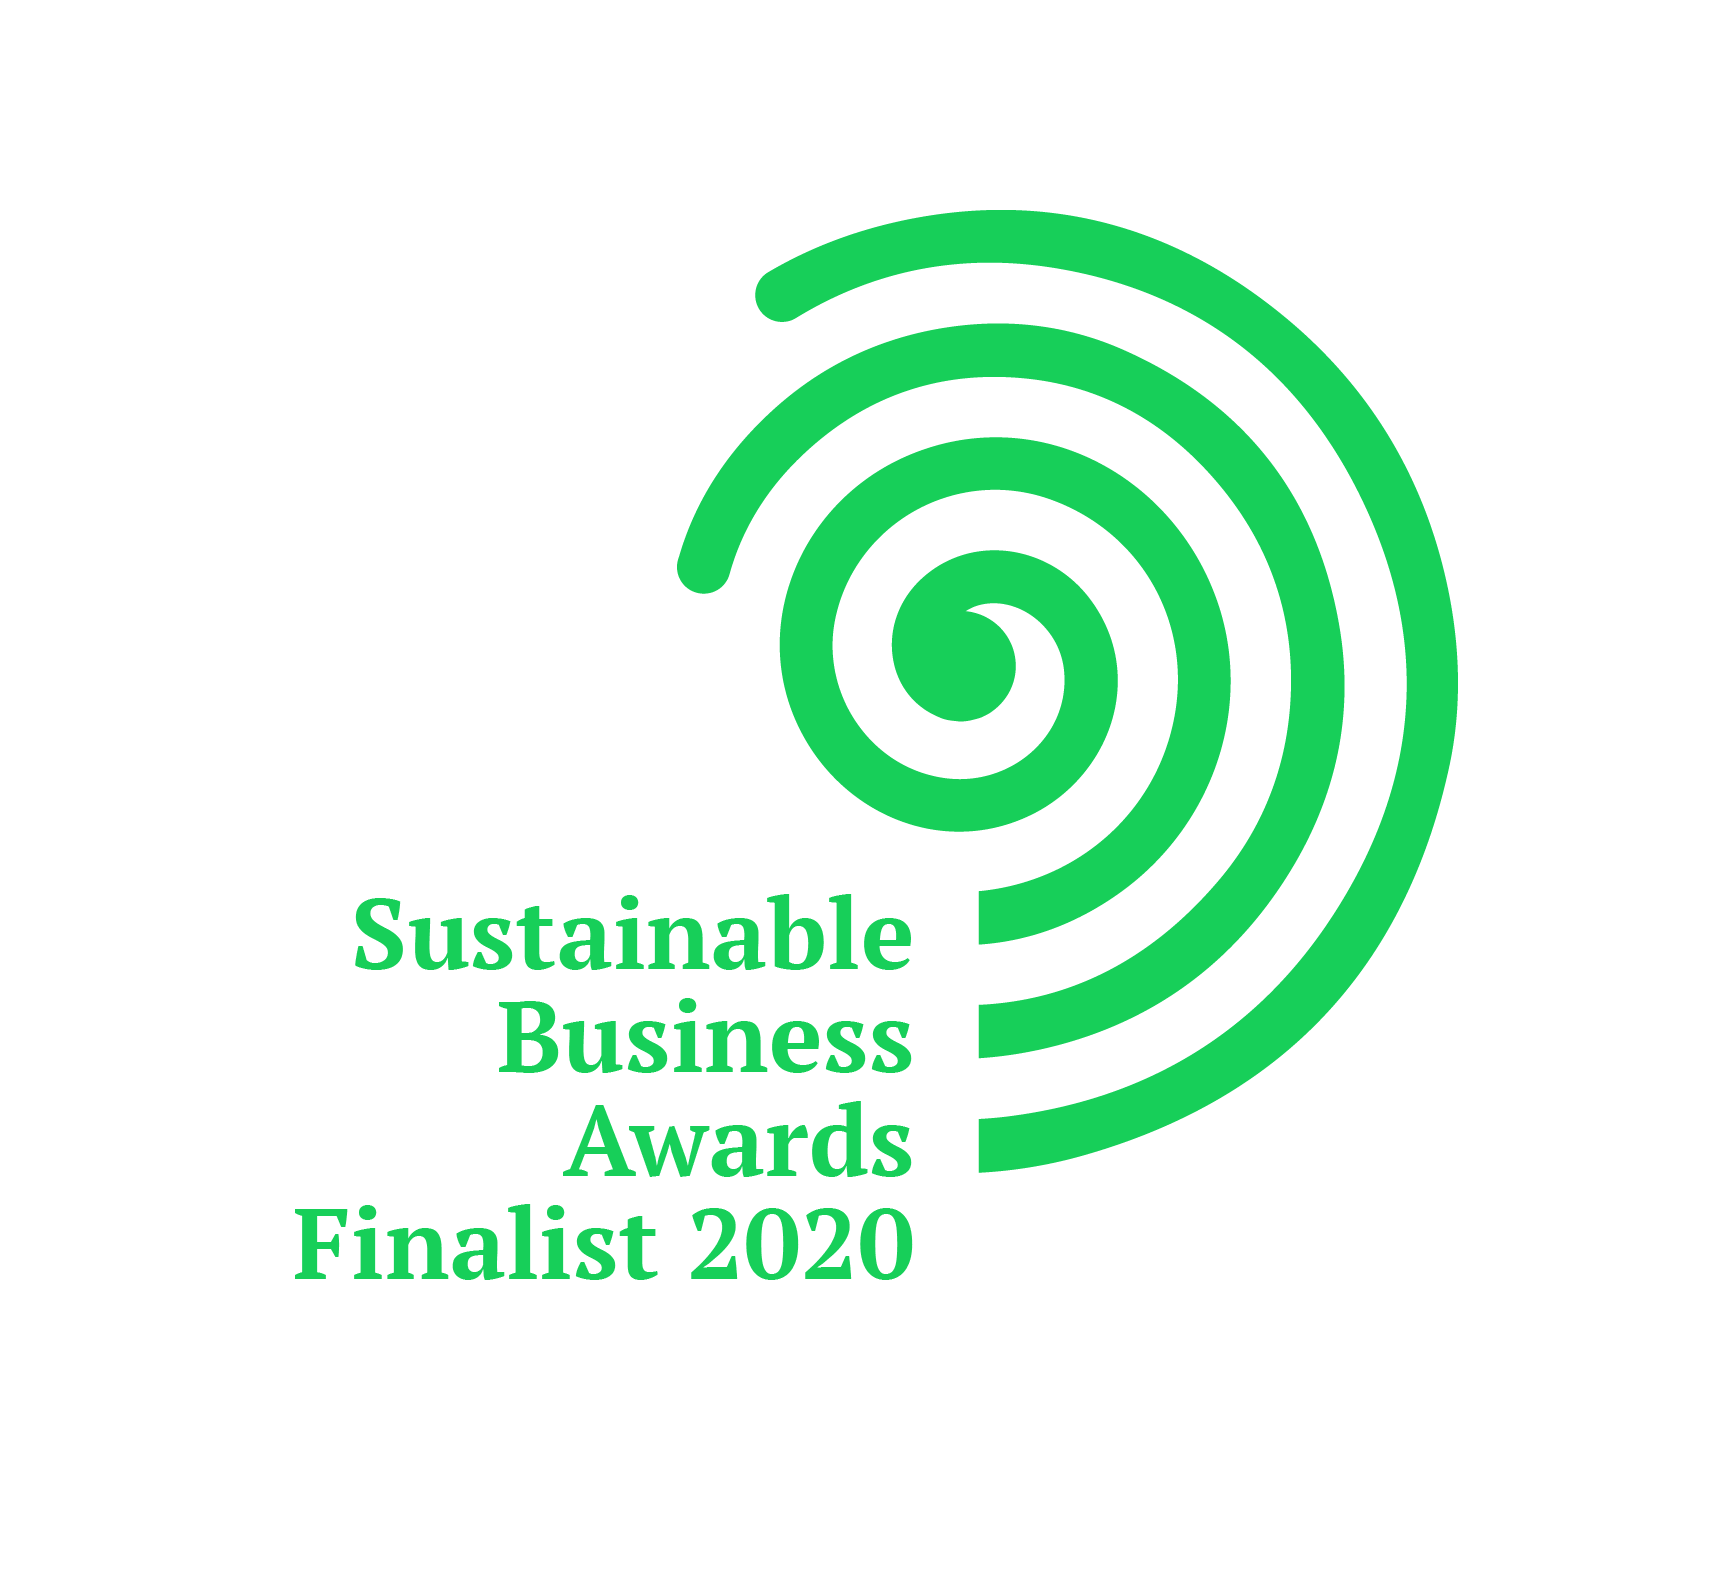 Sustainable Business Awards Finalist